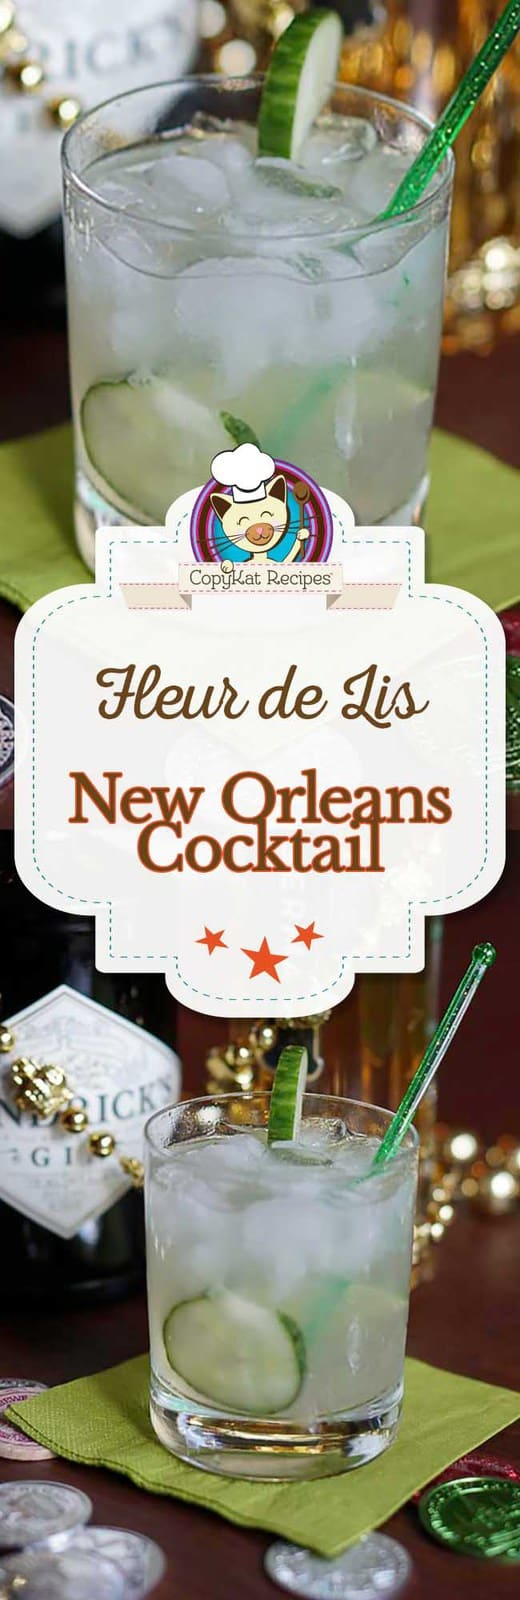 You can prepare the Fleur de Lis cocktail with this easy recipe.  The Fleur de Lis is a refreshing gin-based cocktail that is perfect for summer.